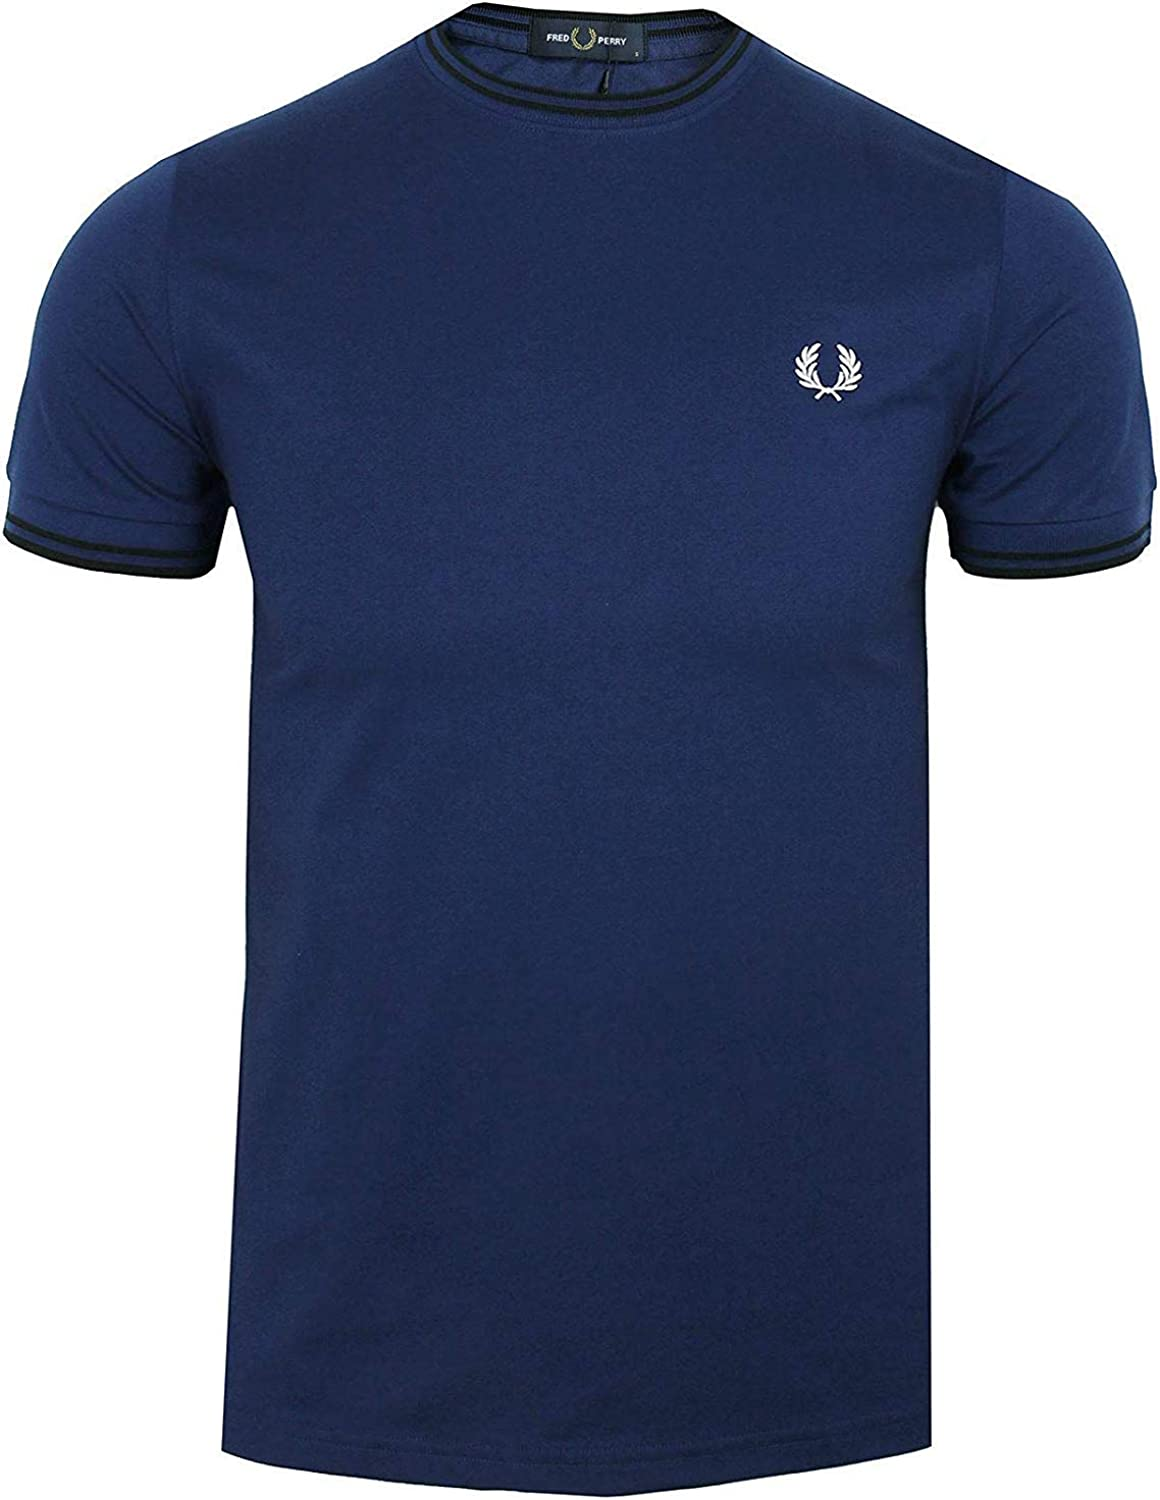 Fred Perry Fp Twin Tipped Camiseta para Hombre